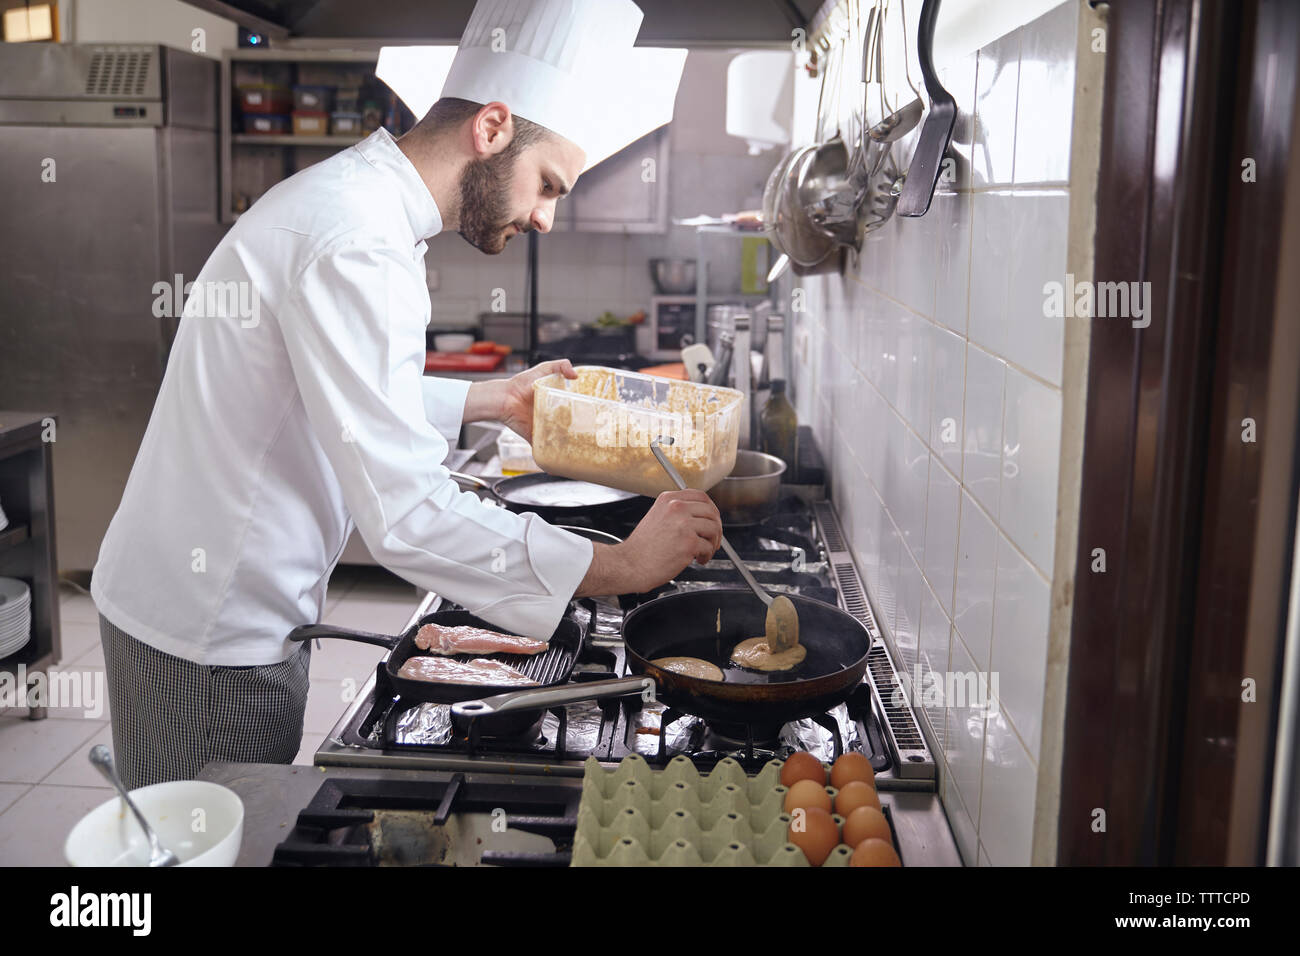 Side view of chef cooking pancake in frying pan on stove at commercial kitchen - Stock Image